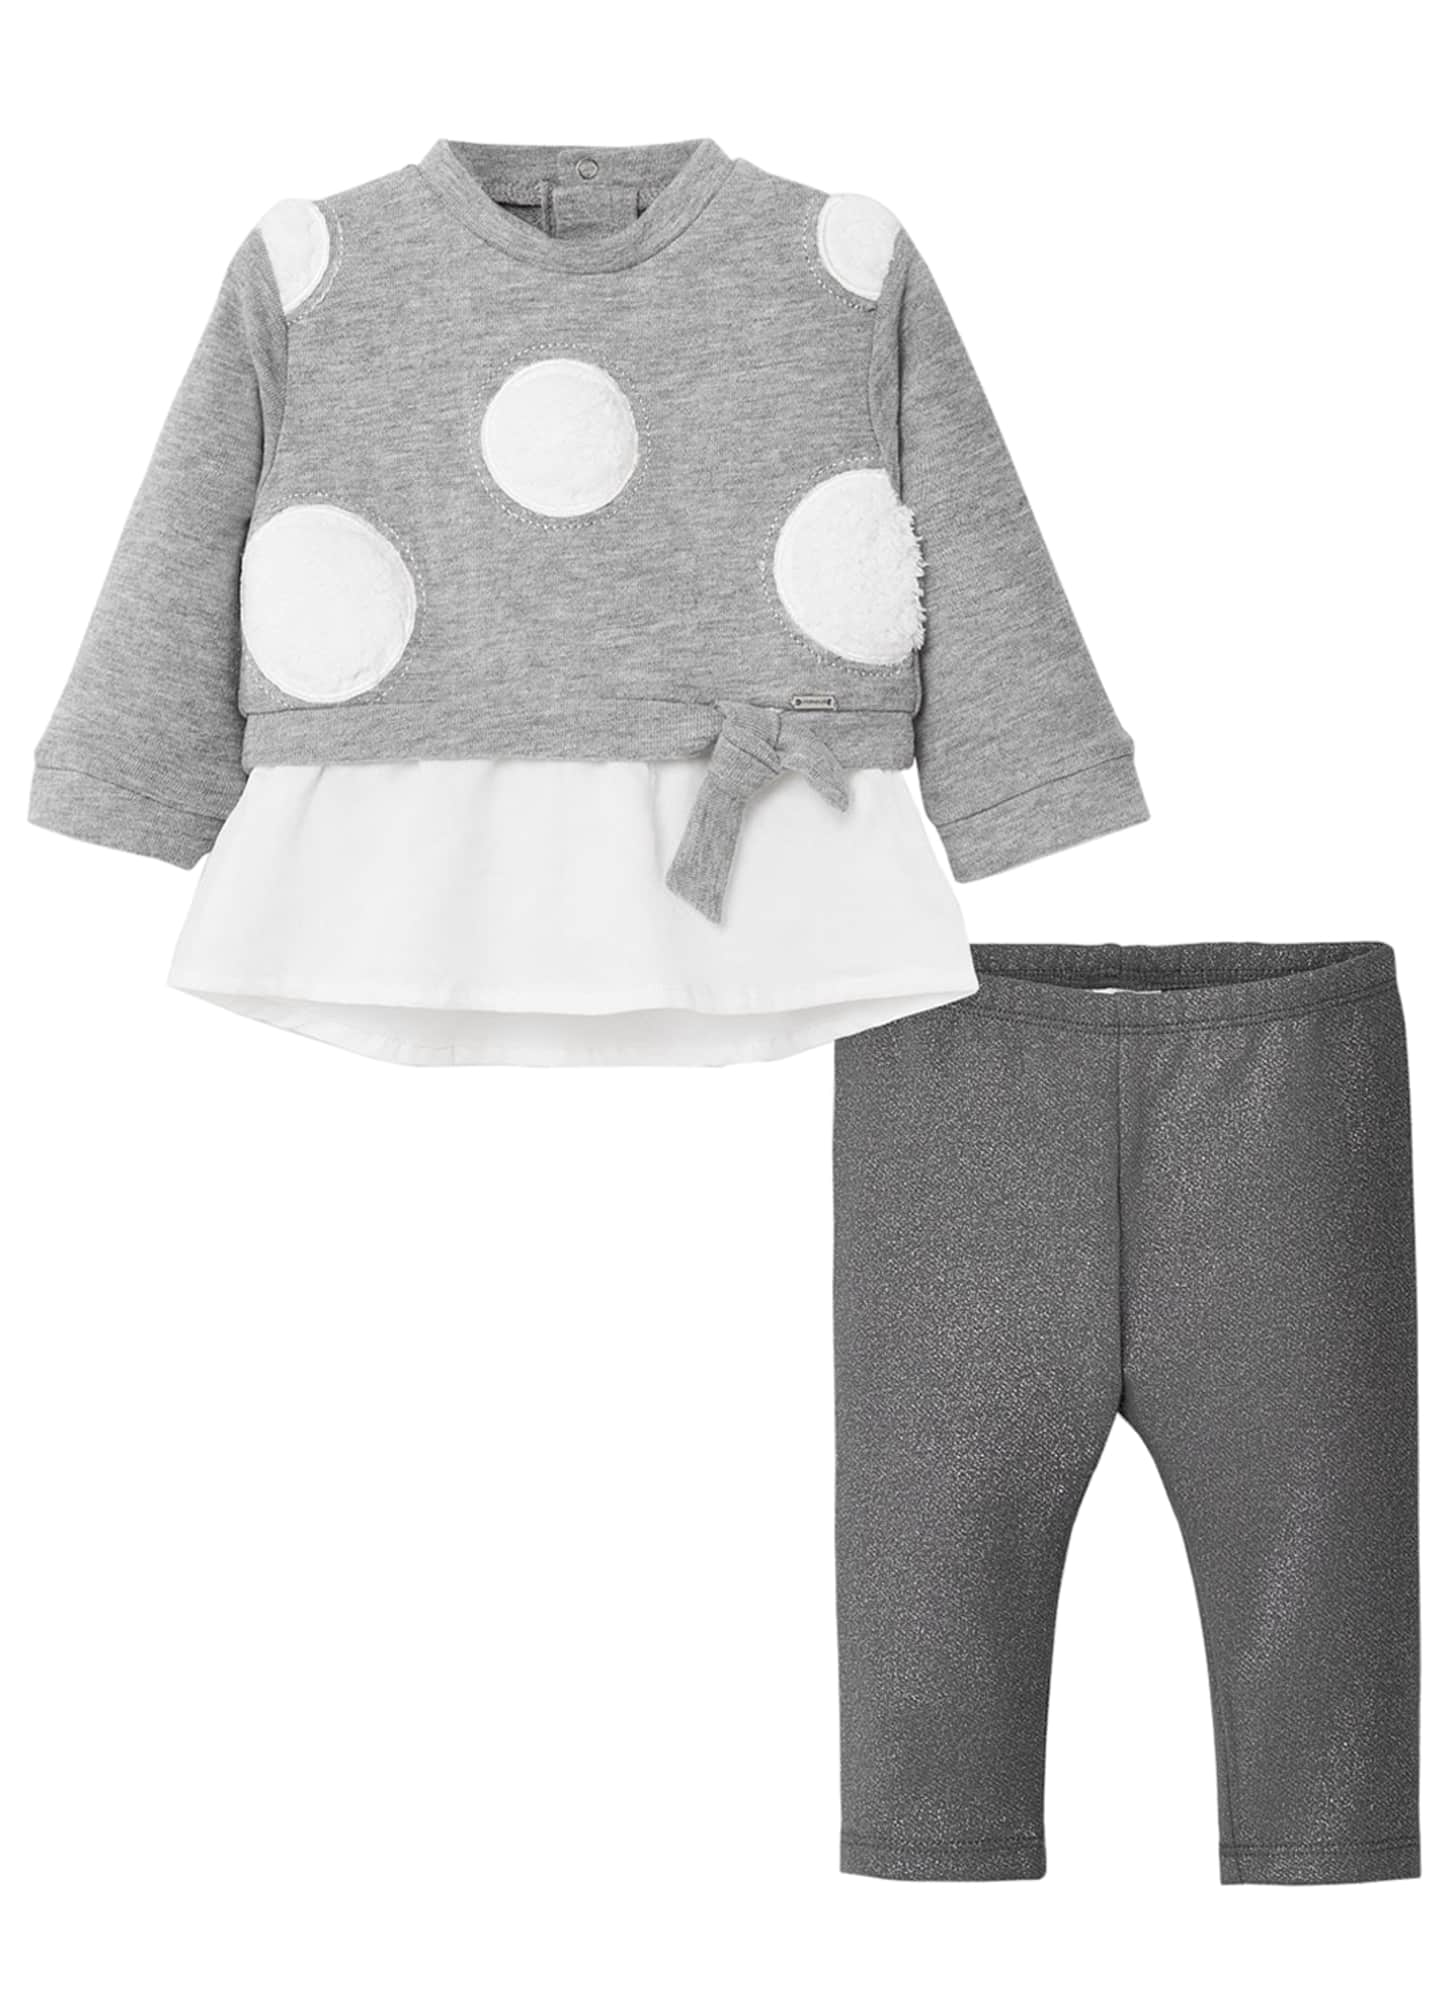 Image 1 of 1: Girl's Two-Piece Polka Dot Outfit Set, Size 12-36 Months